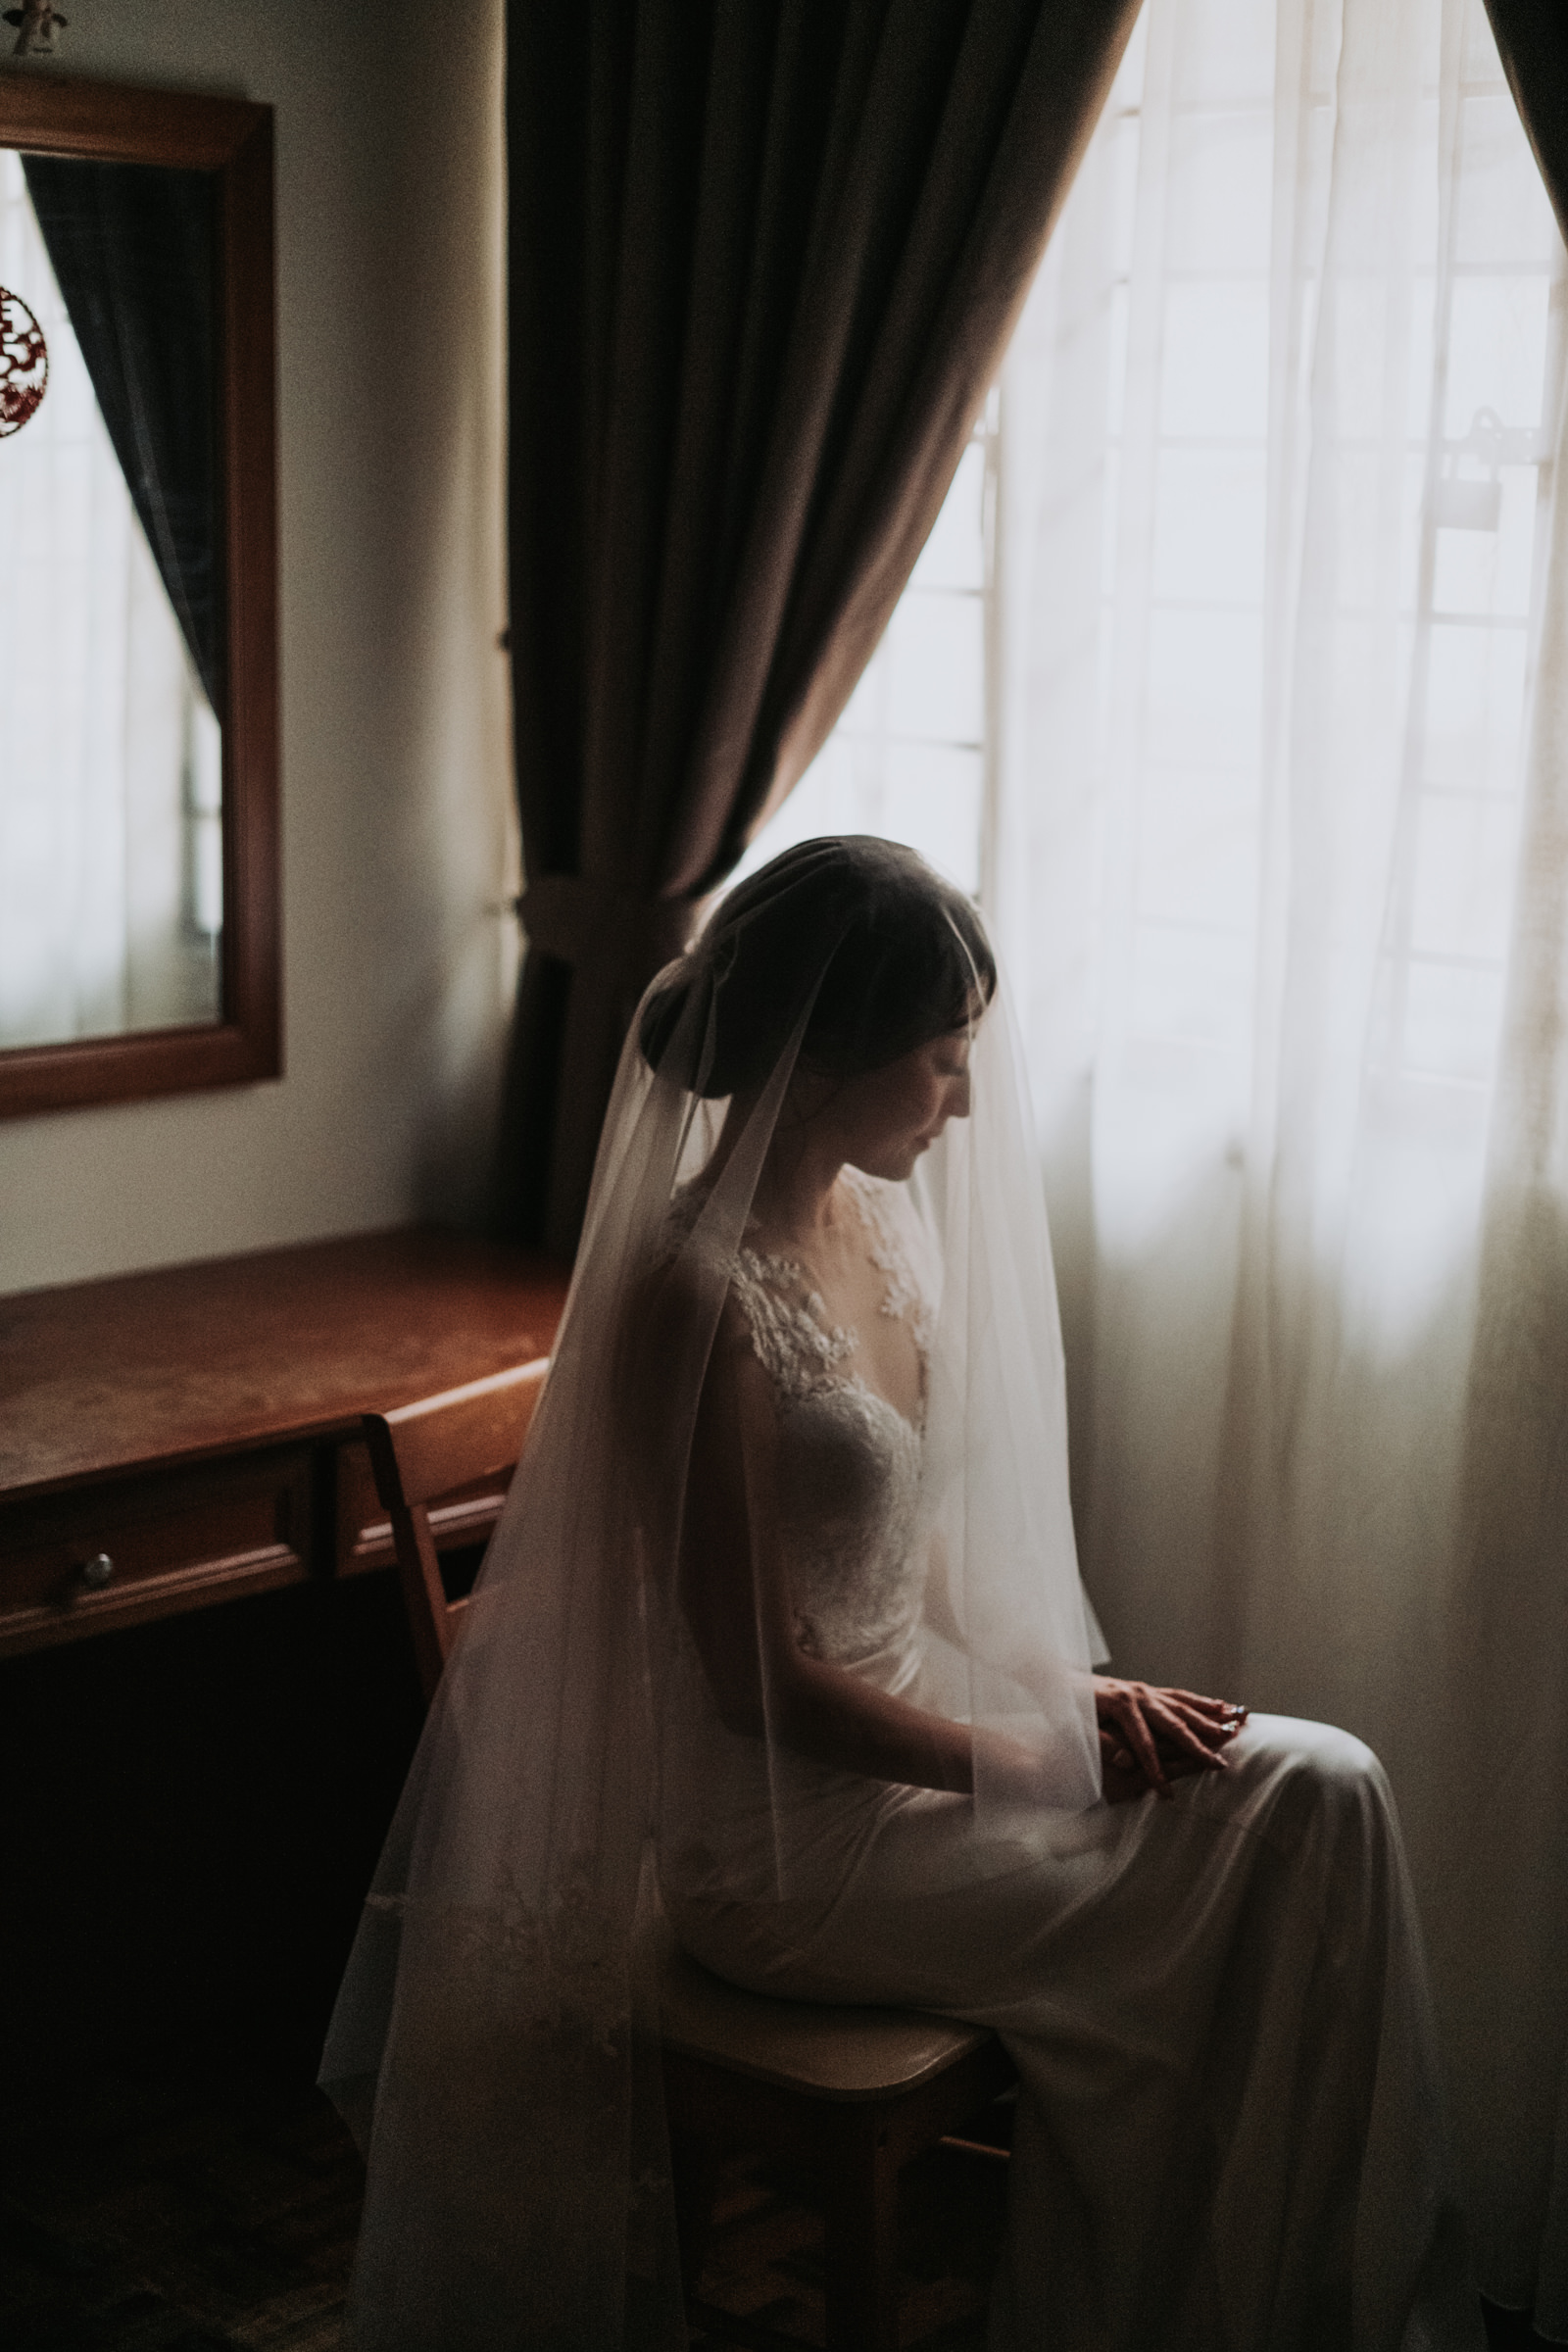 Classic seated bride - Photo by MunKeat Photography Studio